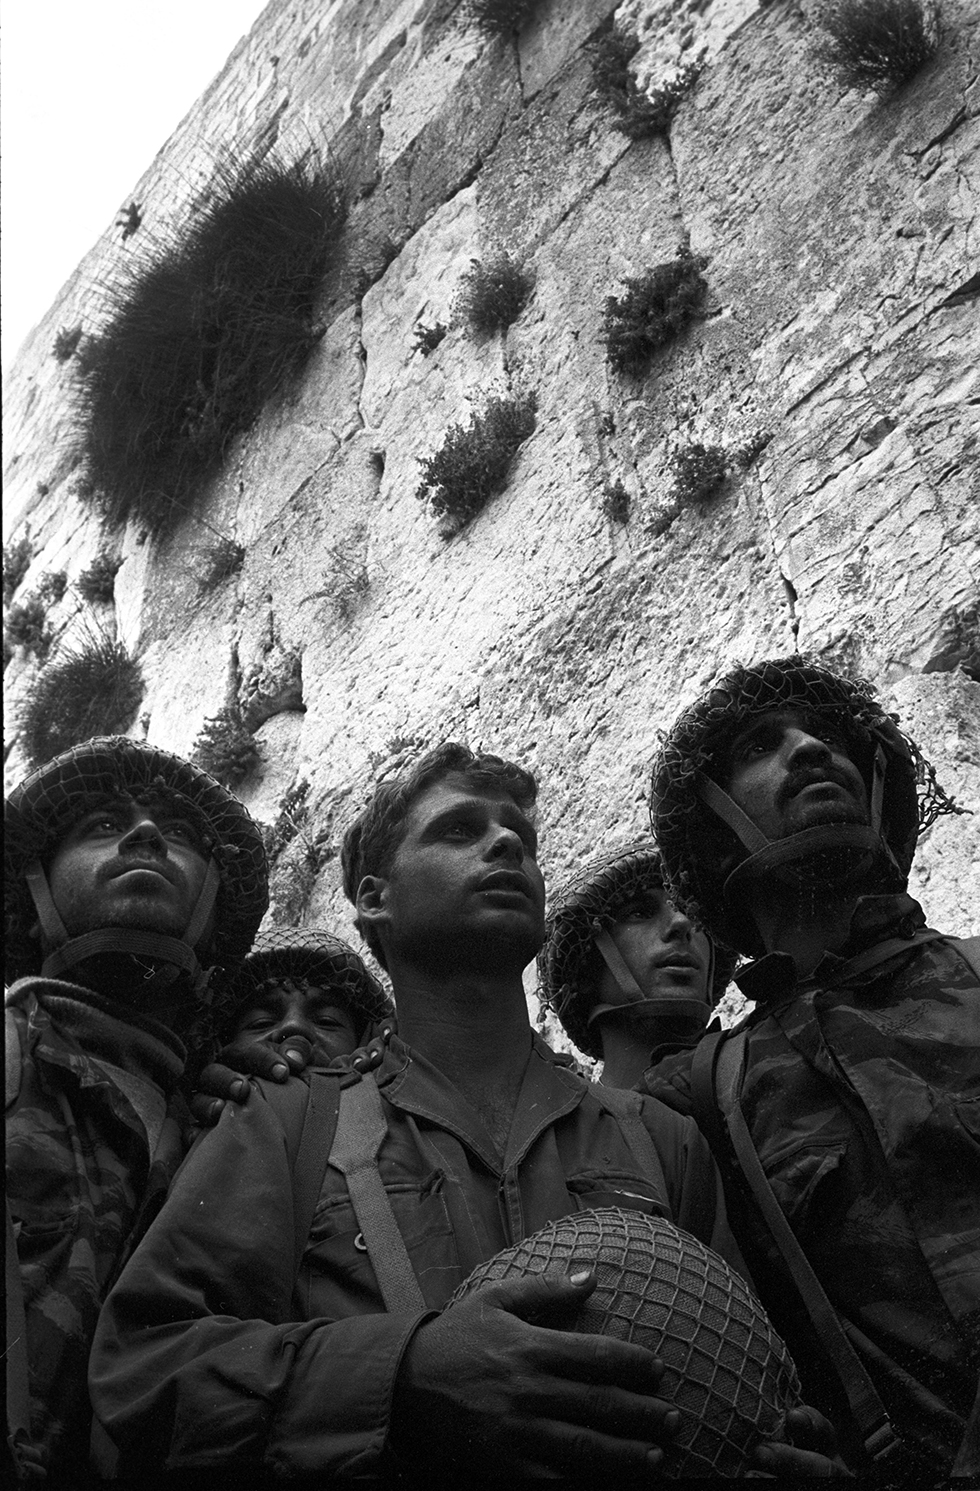 The paratroopers at the Western Wall (Photo: David Rubinger)